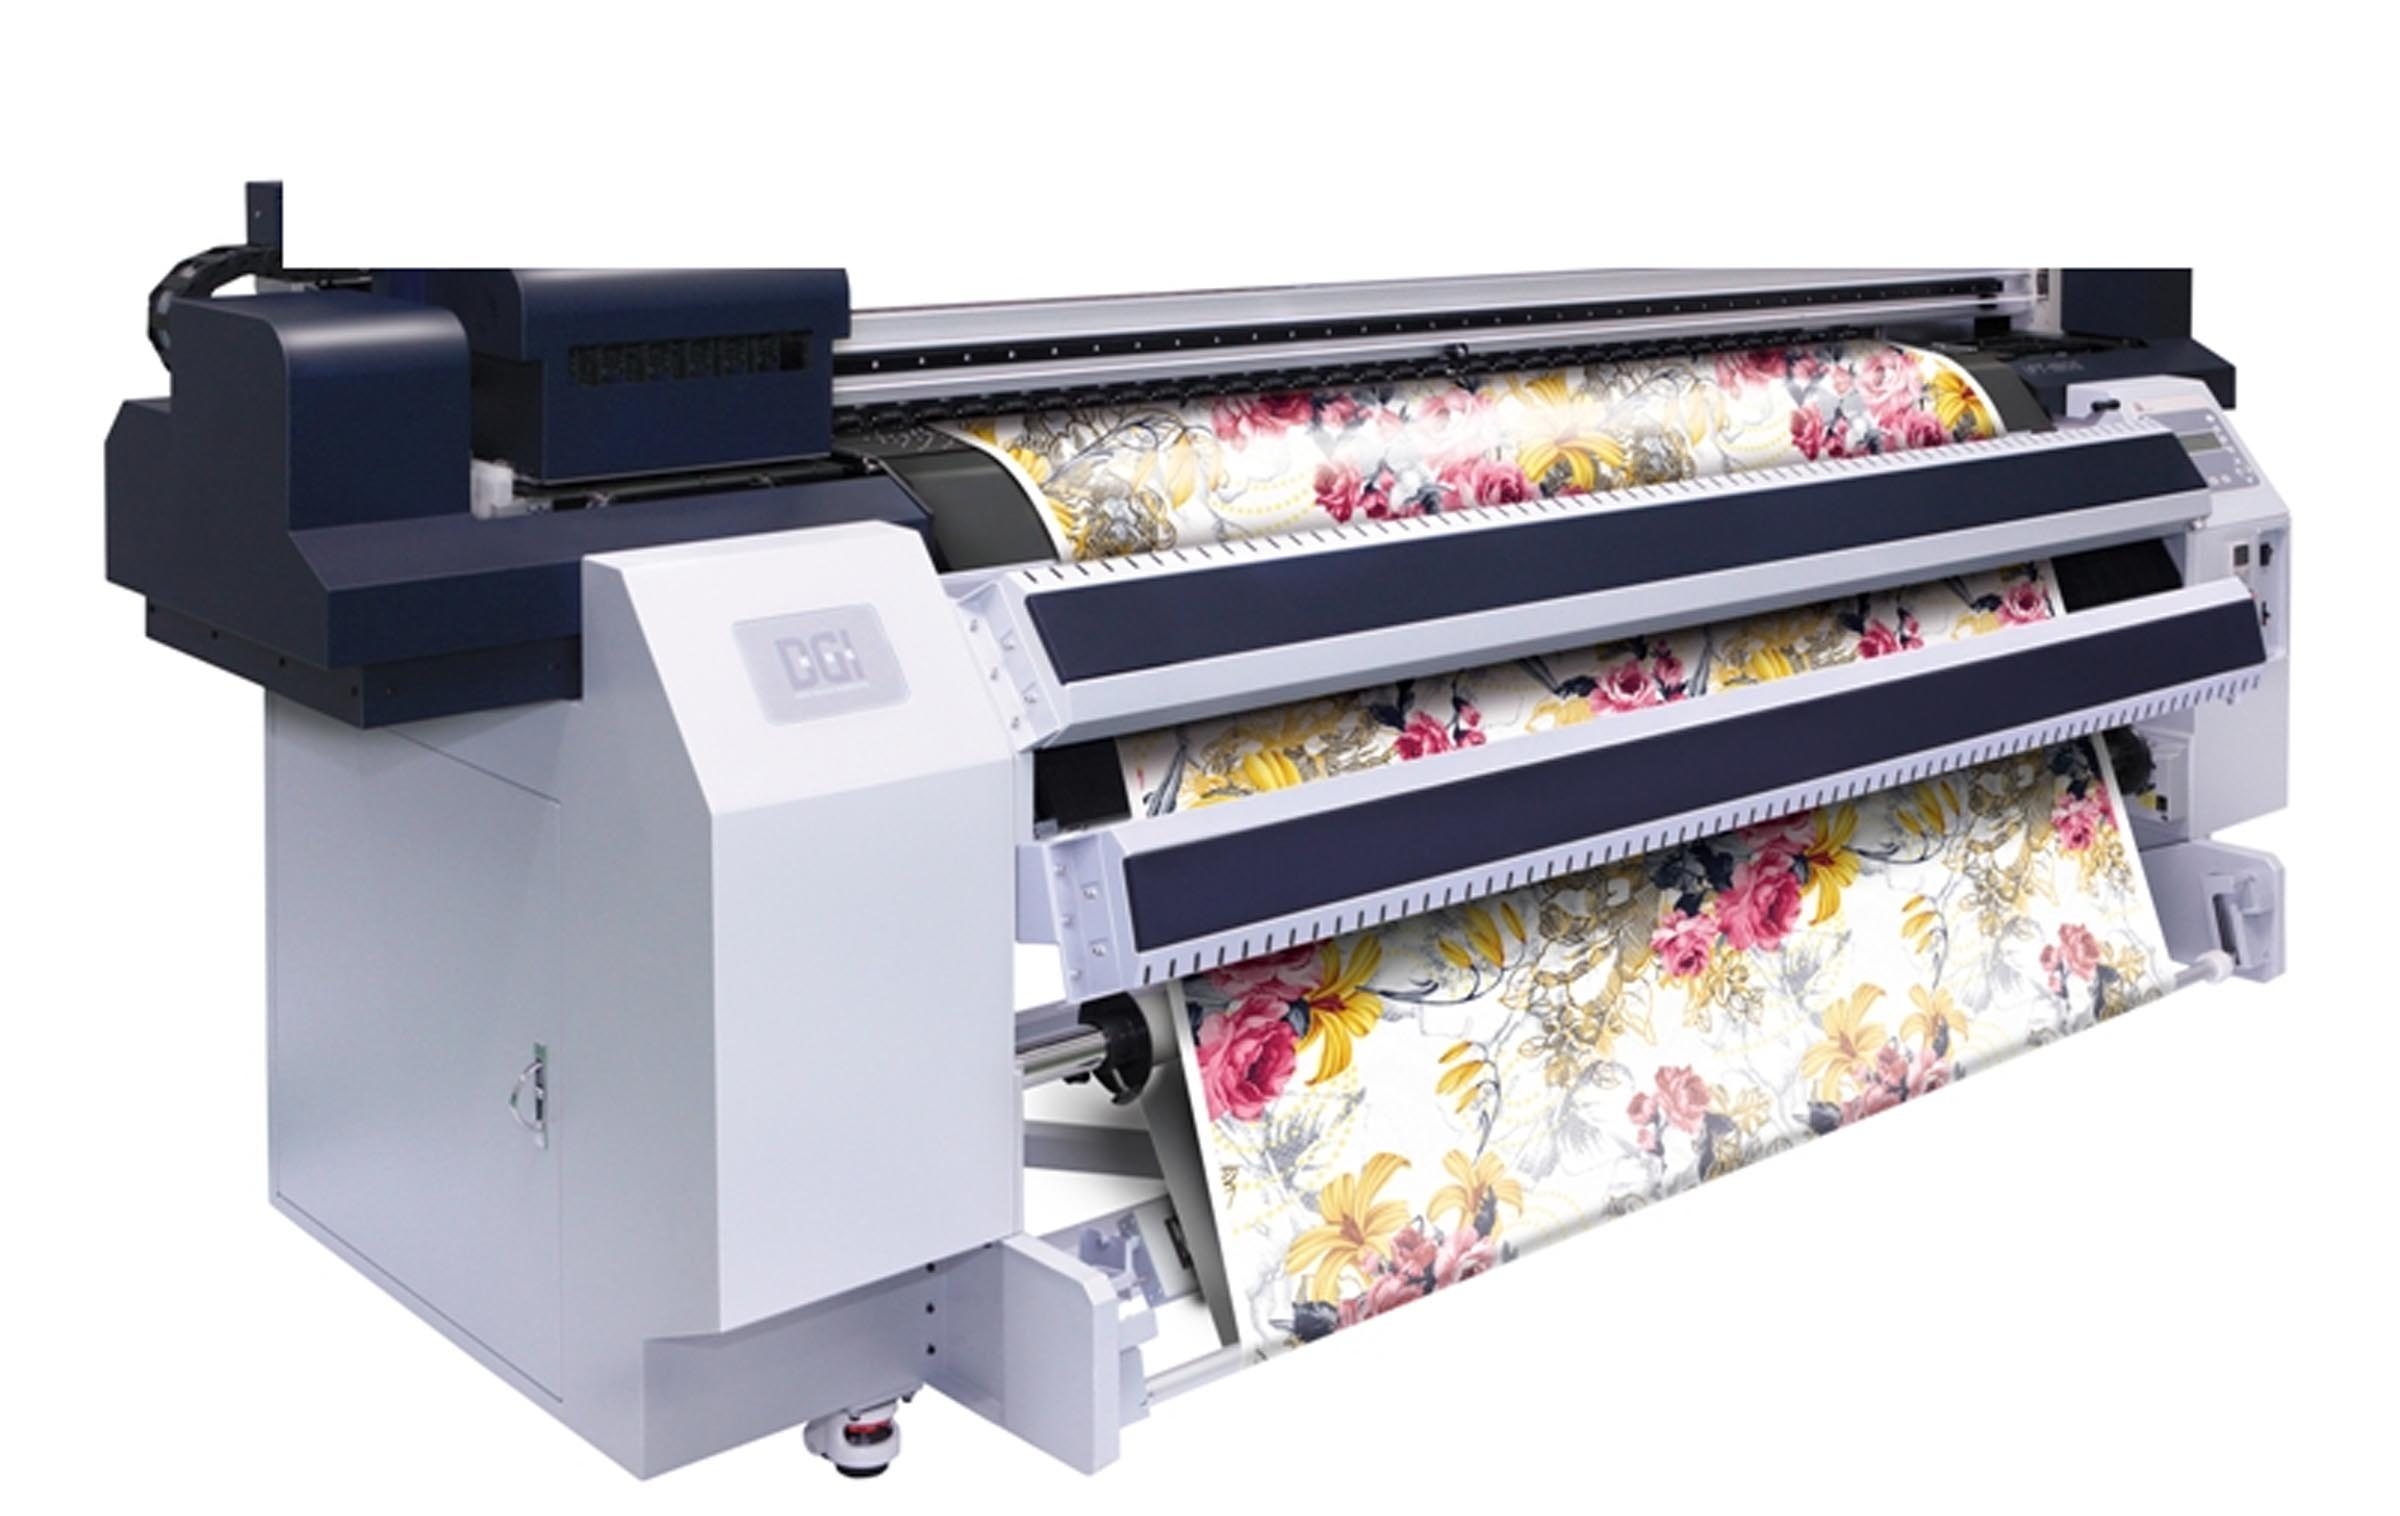 Dye Sublimation FABRIJET FT-1806 Low price in Bangladesh | ClickBD large image 0